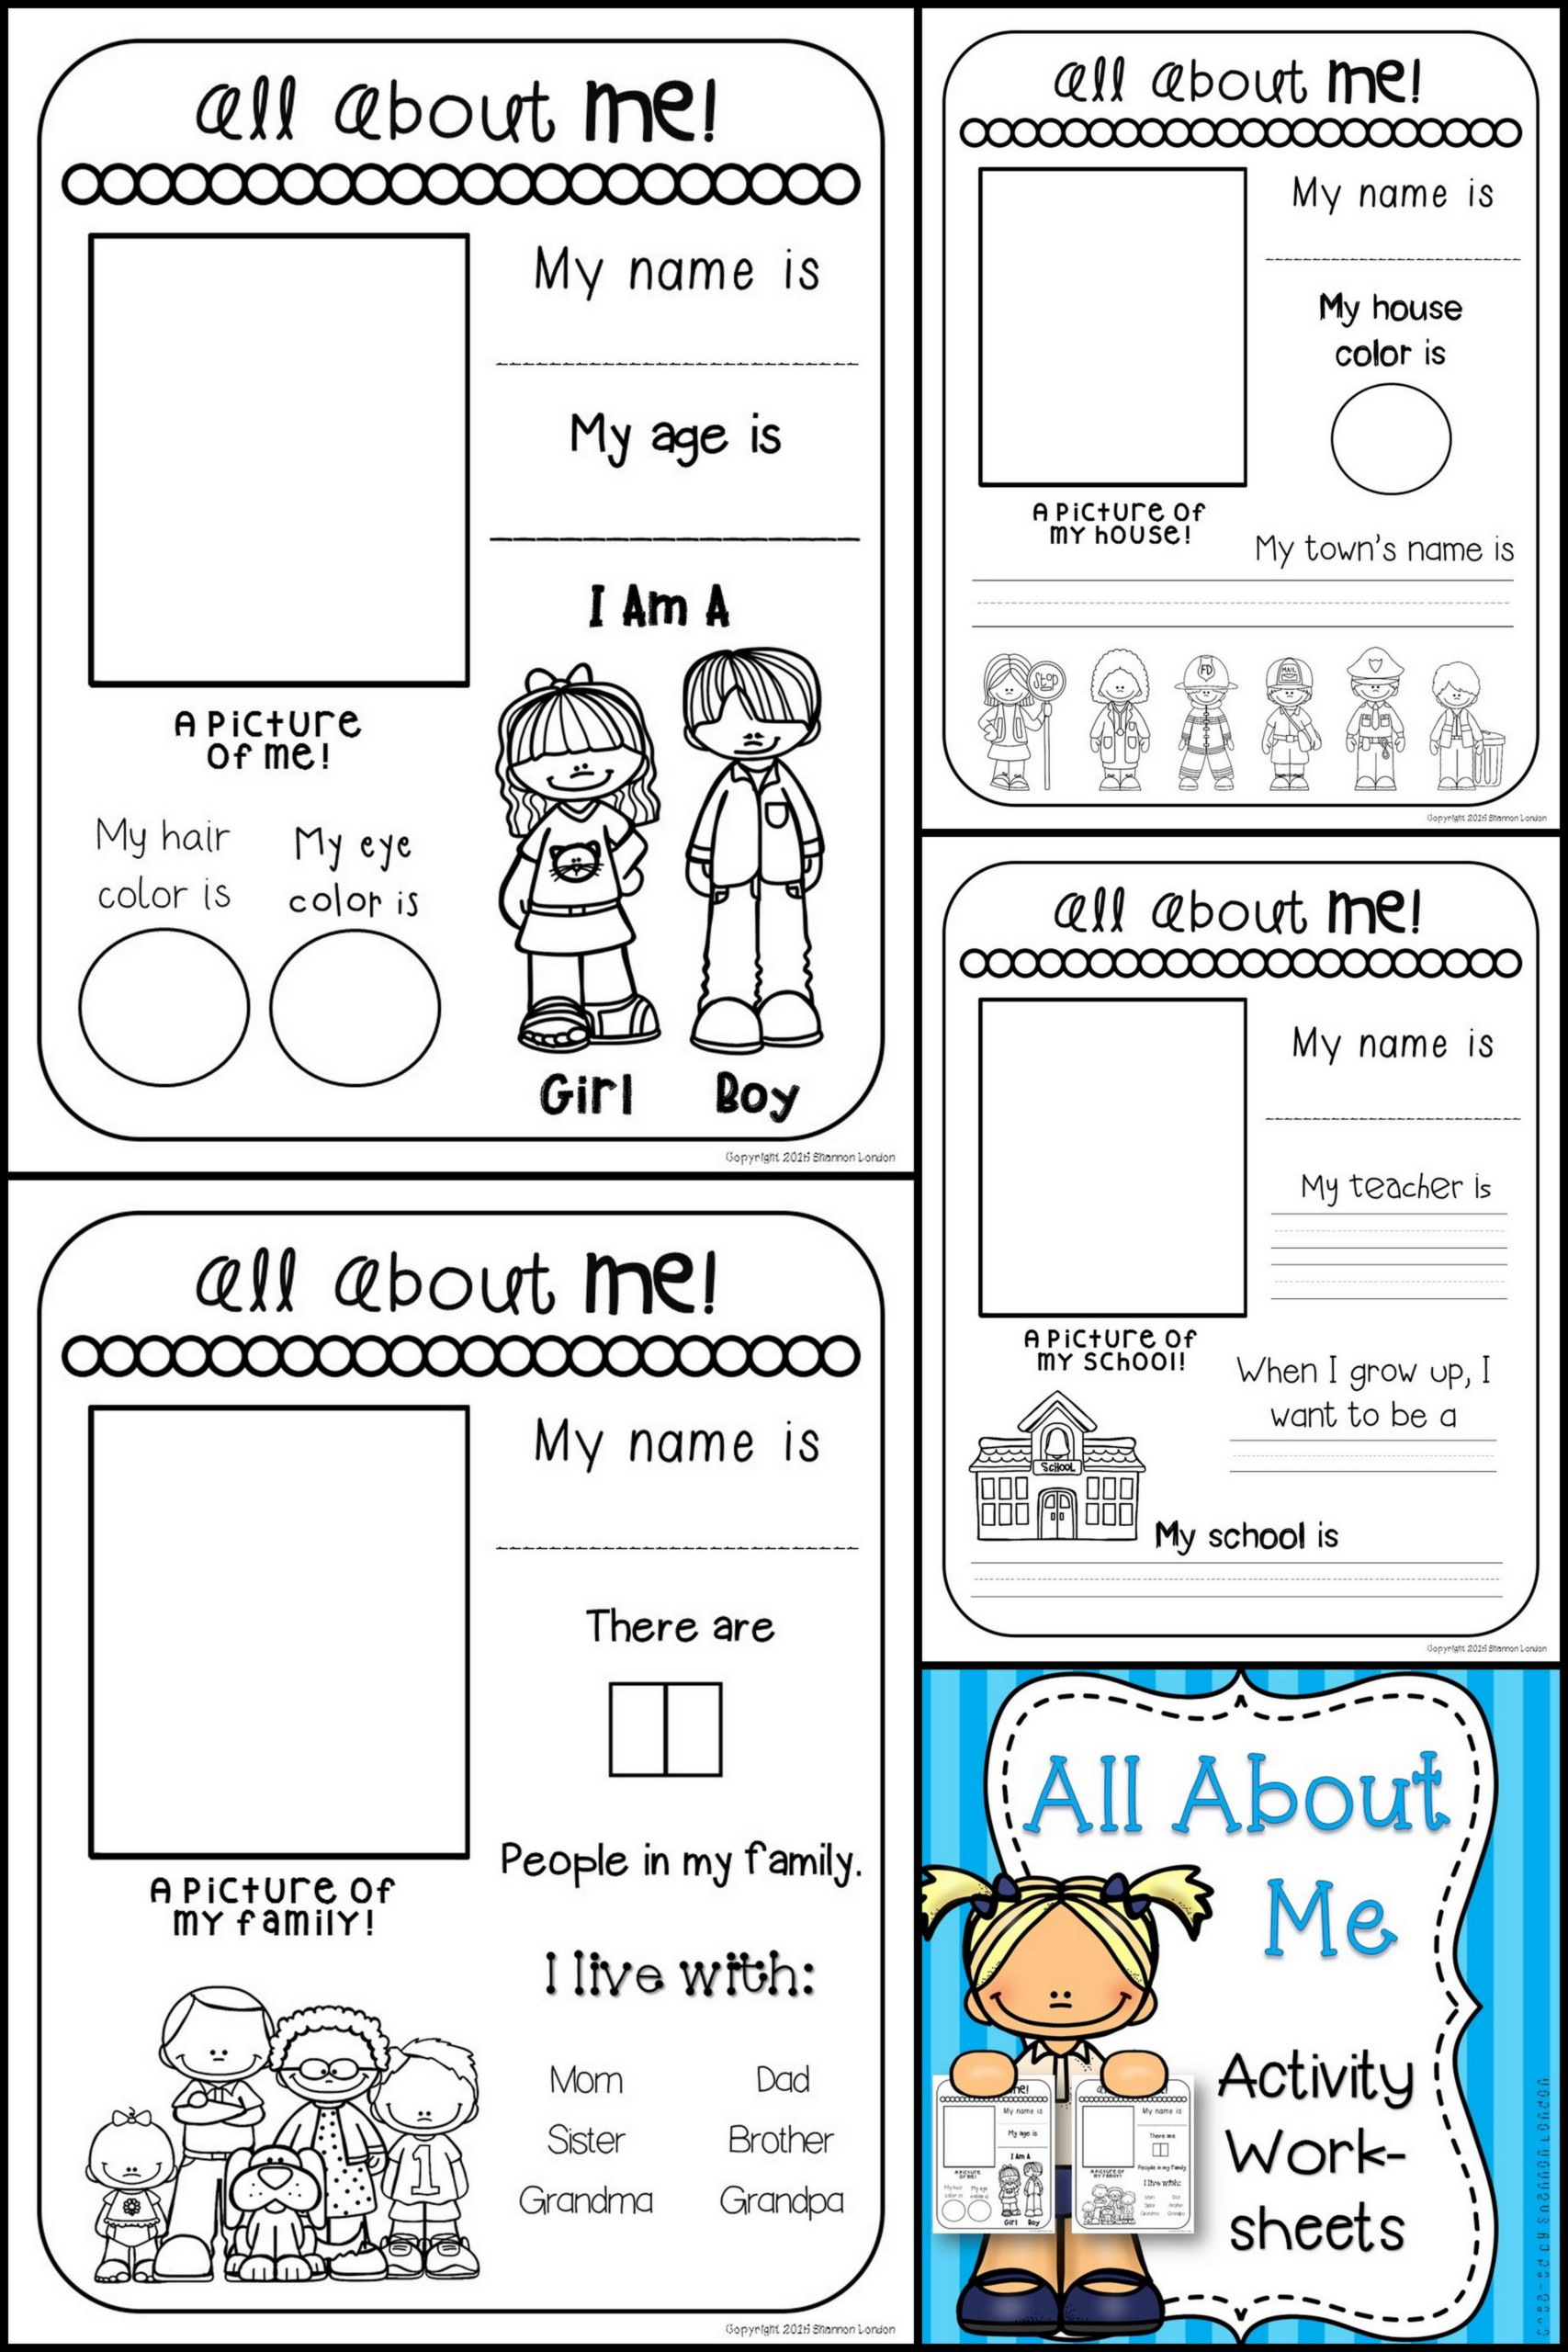 Creative Writing For Children Worksheets